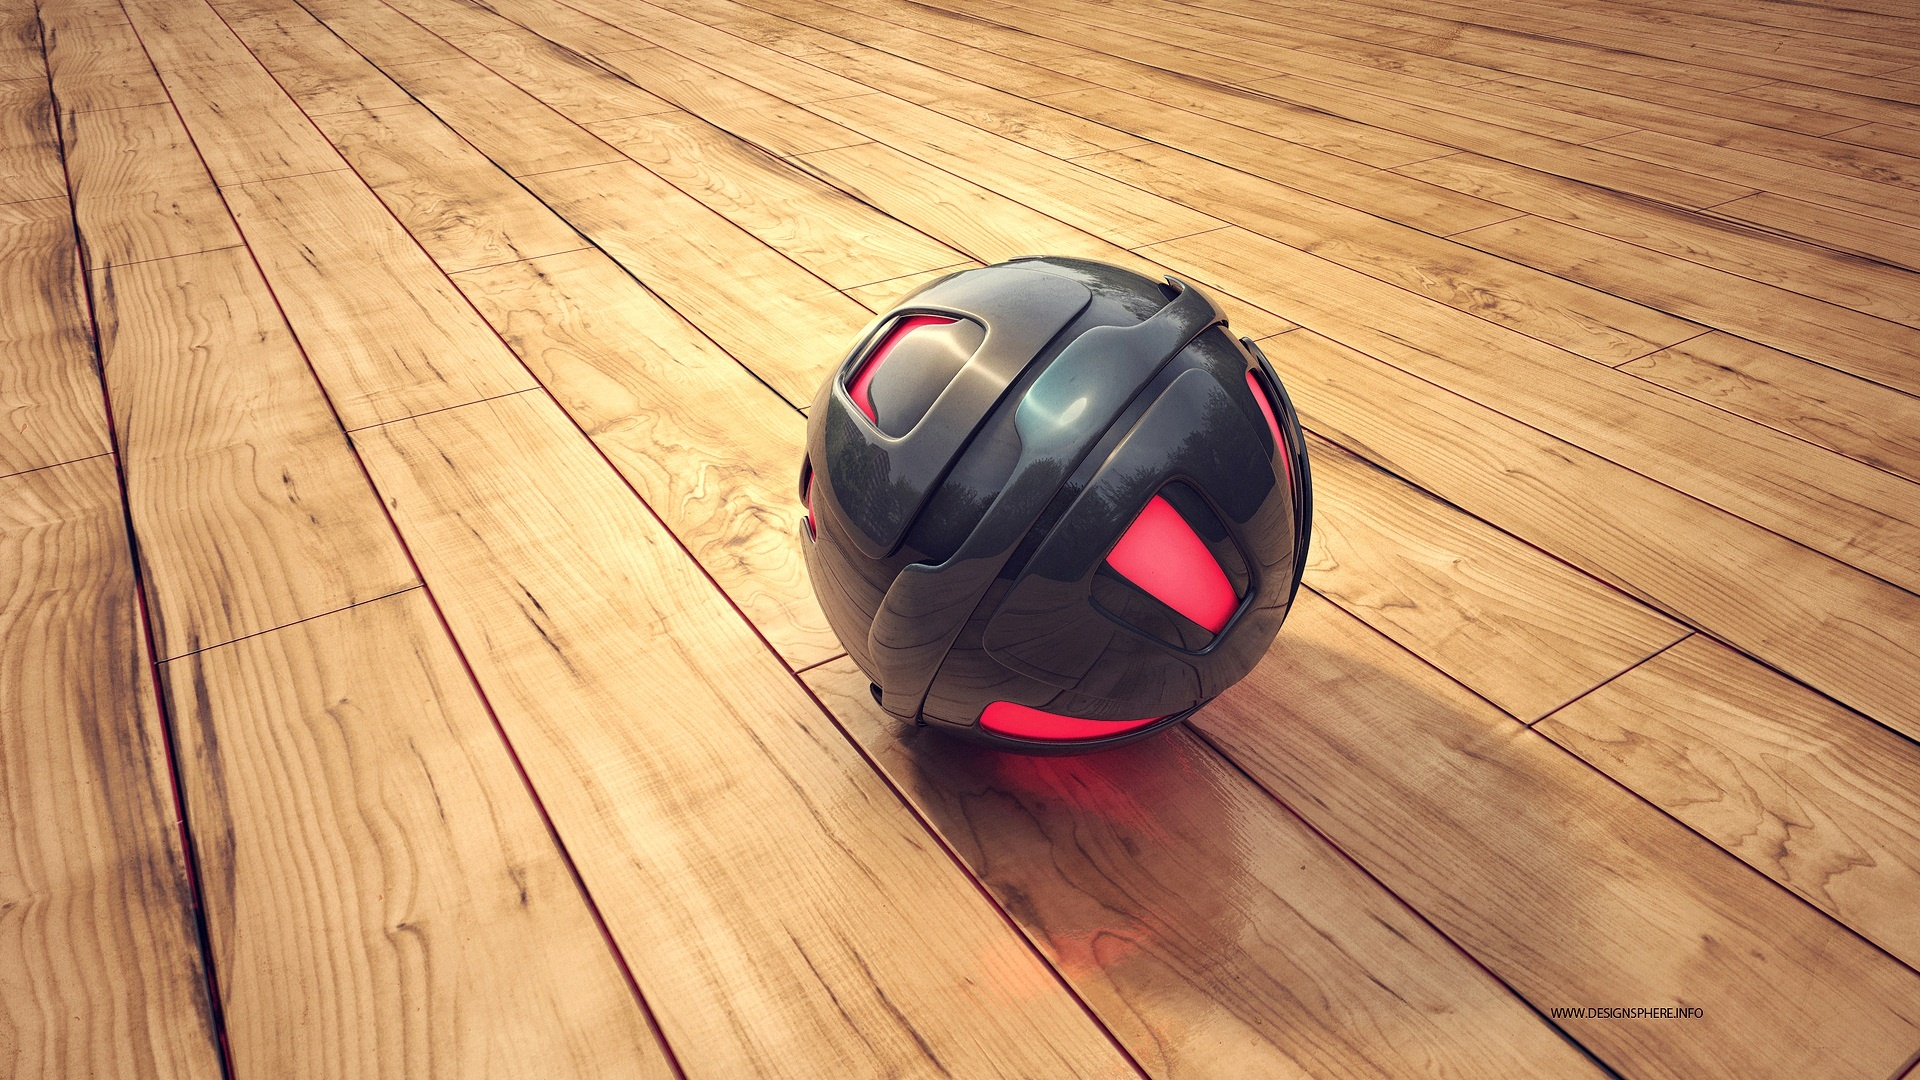 abstract wallpapers hd A6 sphere